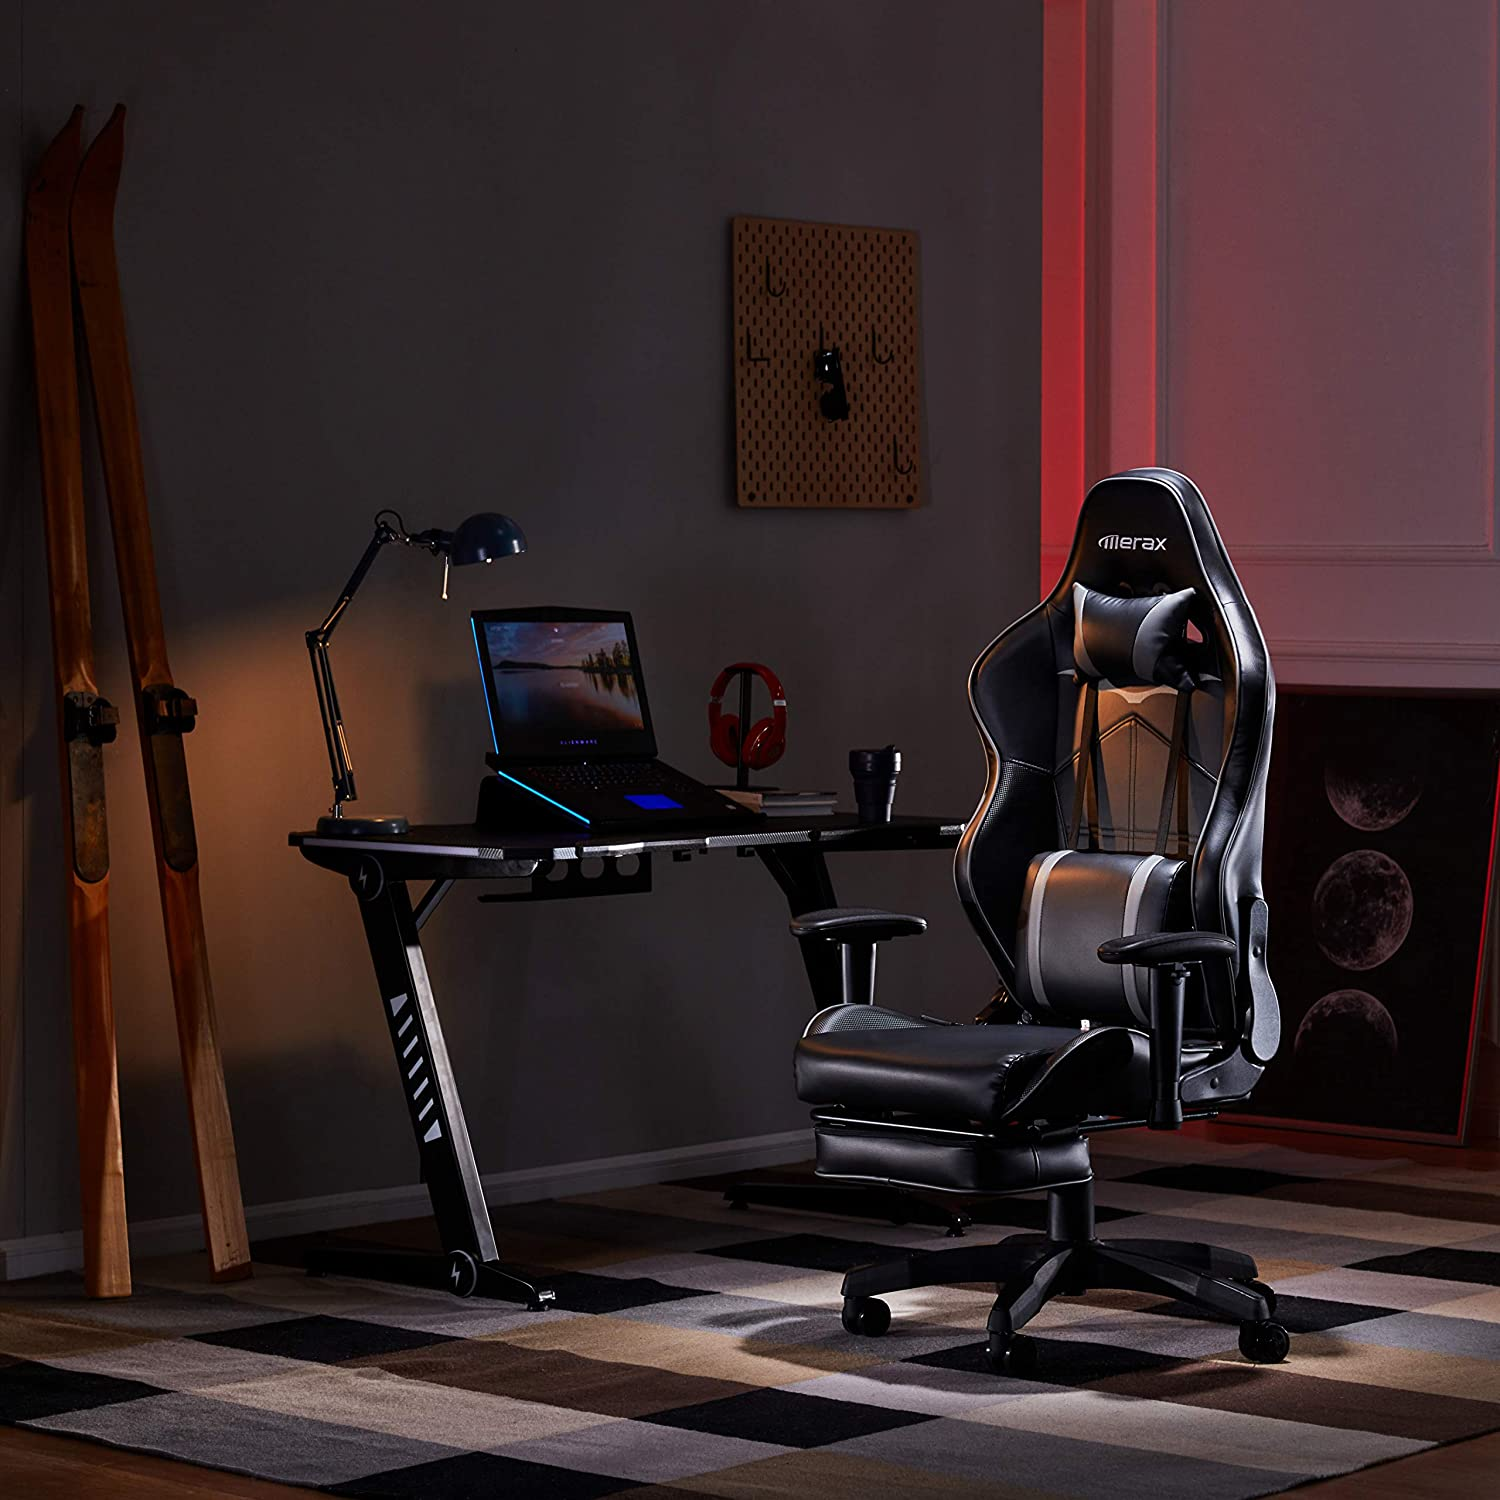 MIERES High Back Gaming Chairs of Professional Racing Style, Executive Ergonomic PU Leather with Massager Lumbar Support,Footrest and Headrest, Black